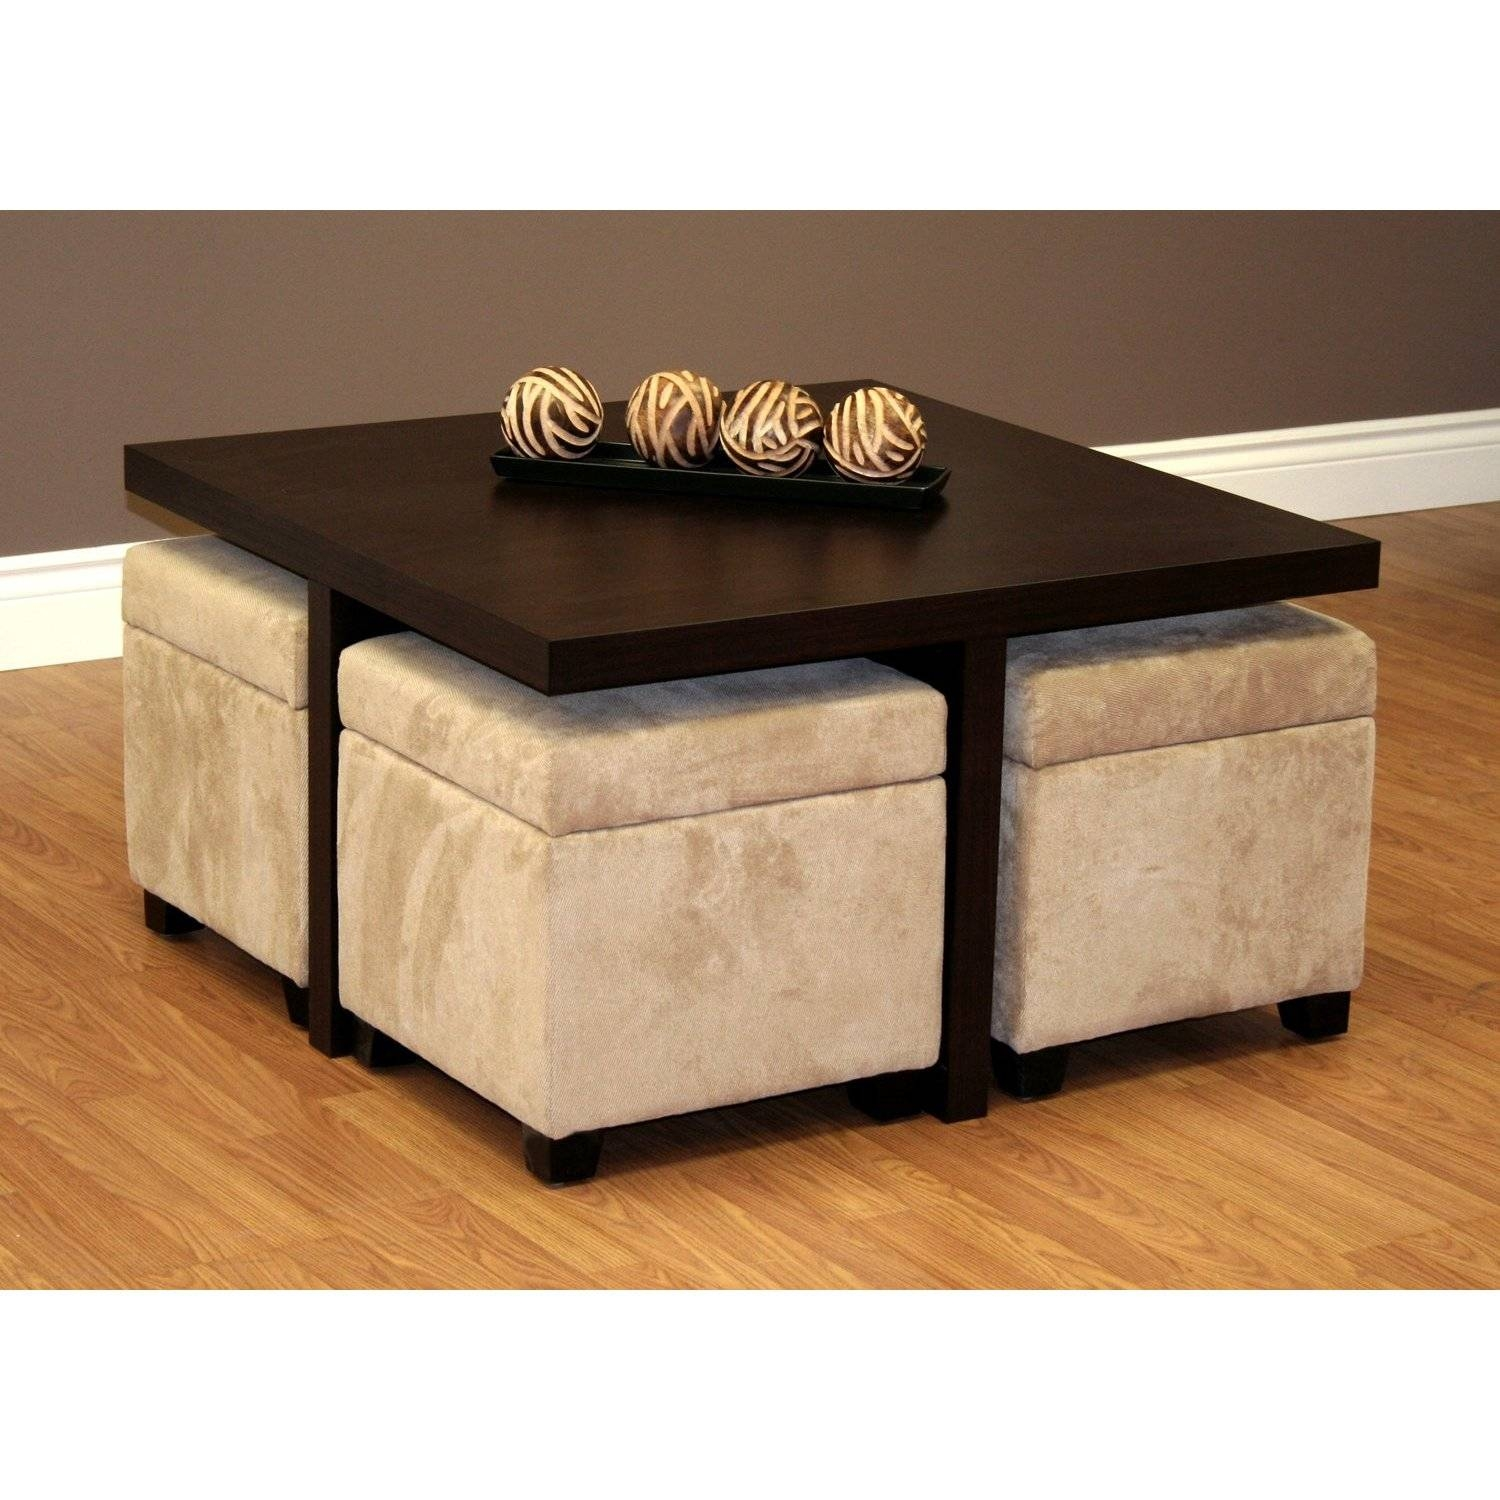 Furniture: Luxury Coffee Table With Stools For Living Room throughout Cheap Coffee Tables With Storage (Image 20 of 30)